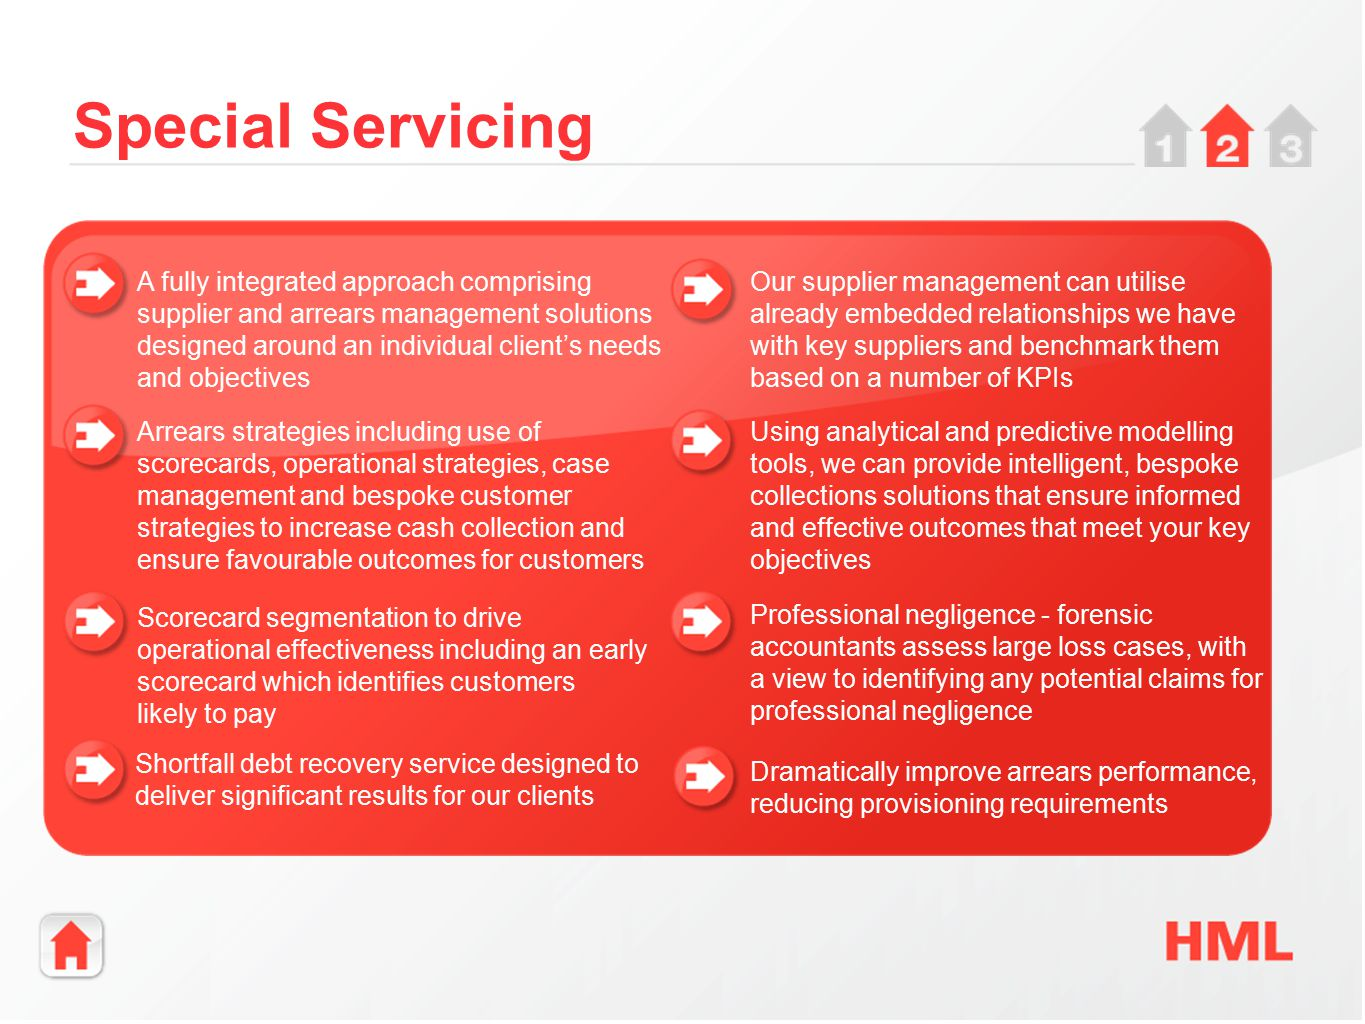 Special Servicing A fully integrated approach comprising supplier and arrears management solutions designed around an individual client's needs and objectives Arrears strategies including use of scorecards, operational strategies, case management and bespoke customer strategies to increase cash collection and ensure favourable outcomes for customers Shortfall debt recovery service designed to deliver significant results for our clients Scorecard segmentation to drive operational effectiveness including an early scorecard which identifies customers likely to pay Our supplier management can utilise already embedded relationships we have with key suppliers and benchmark them based on a number of KPIs Using analytical and predictive modelling tools, we can provide intelligent, bespoke collections solutions that ensure informed and effective outcomes that meet your key objectives Professional negligence - forensic accountants assess large loss cases, with a view to identifying any potential claims for professional negligence Dramatically improve arrears performance, reducing provisioning requirements